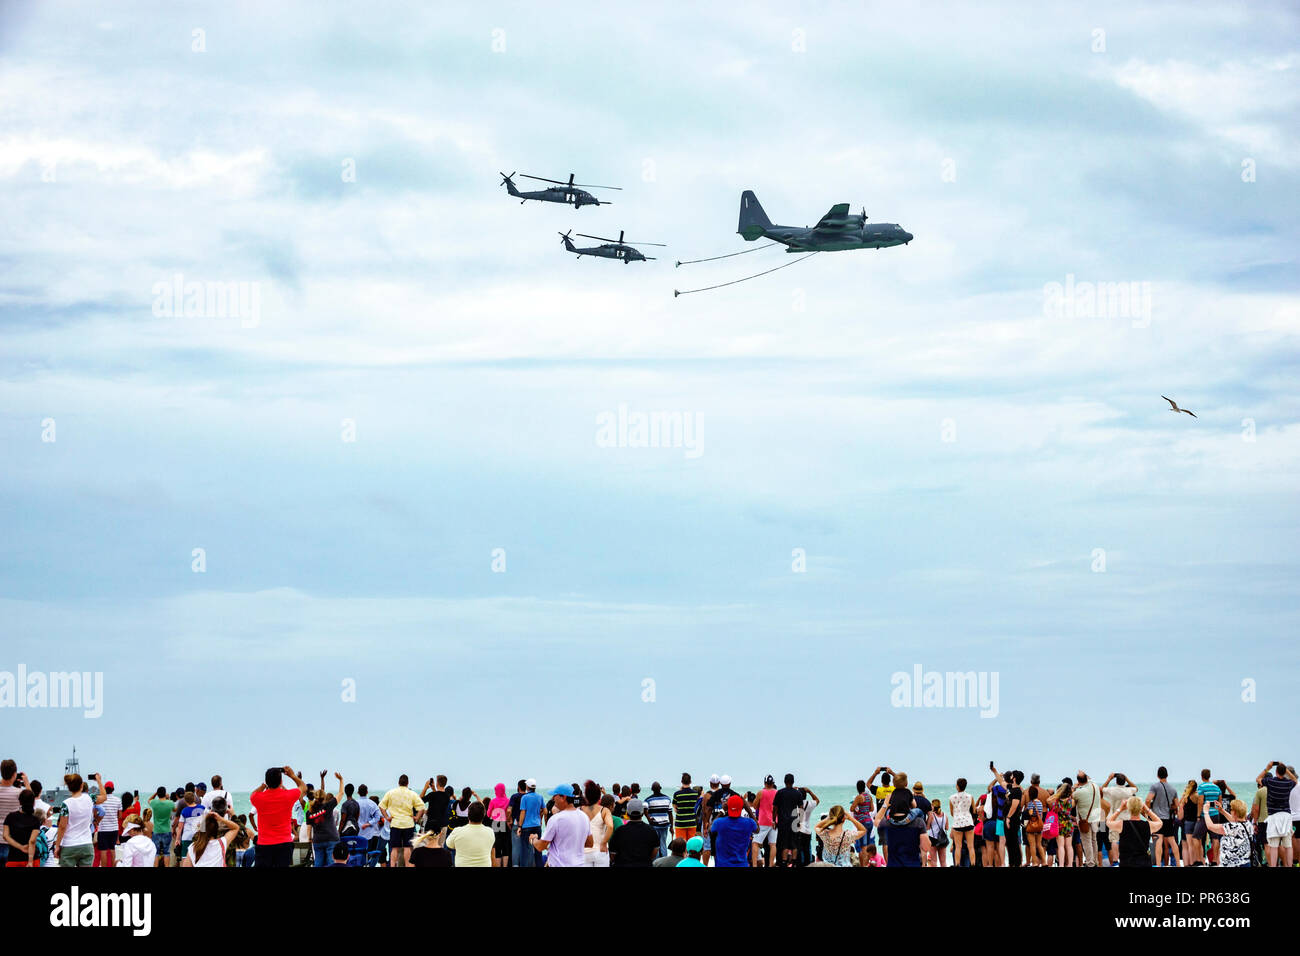 Miami Beach Florida National Salute to America's Heroes Air & Sea Show Lockheed C-130 Hercules four-engine turboprop military transport aircraft Sikor - Stock Image